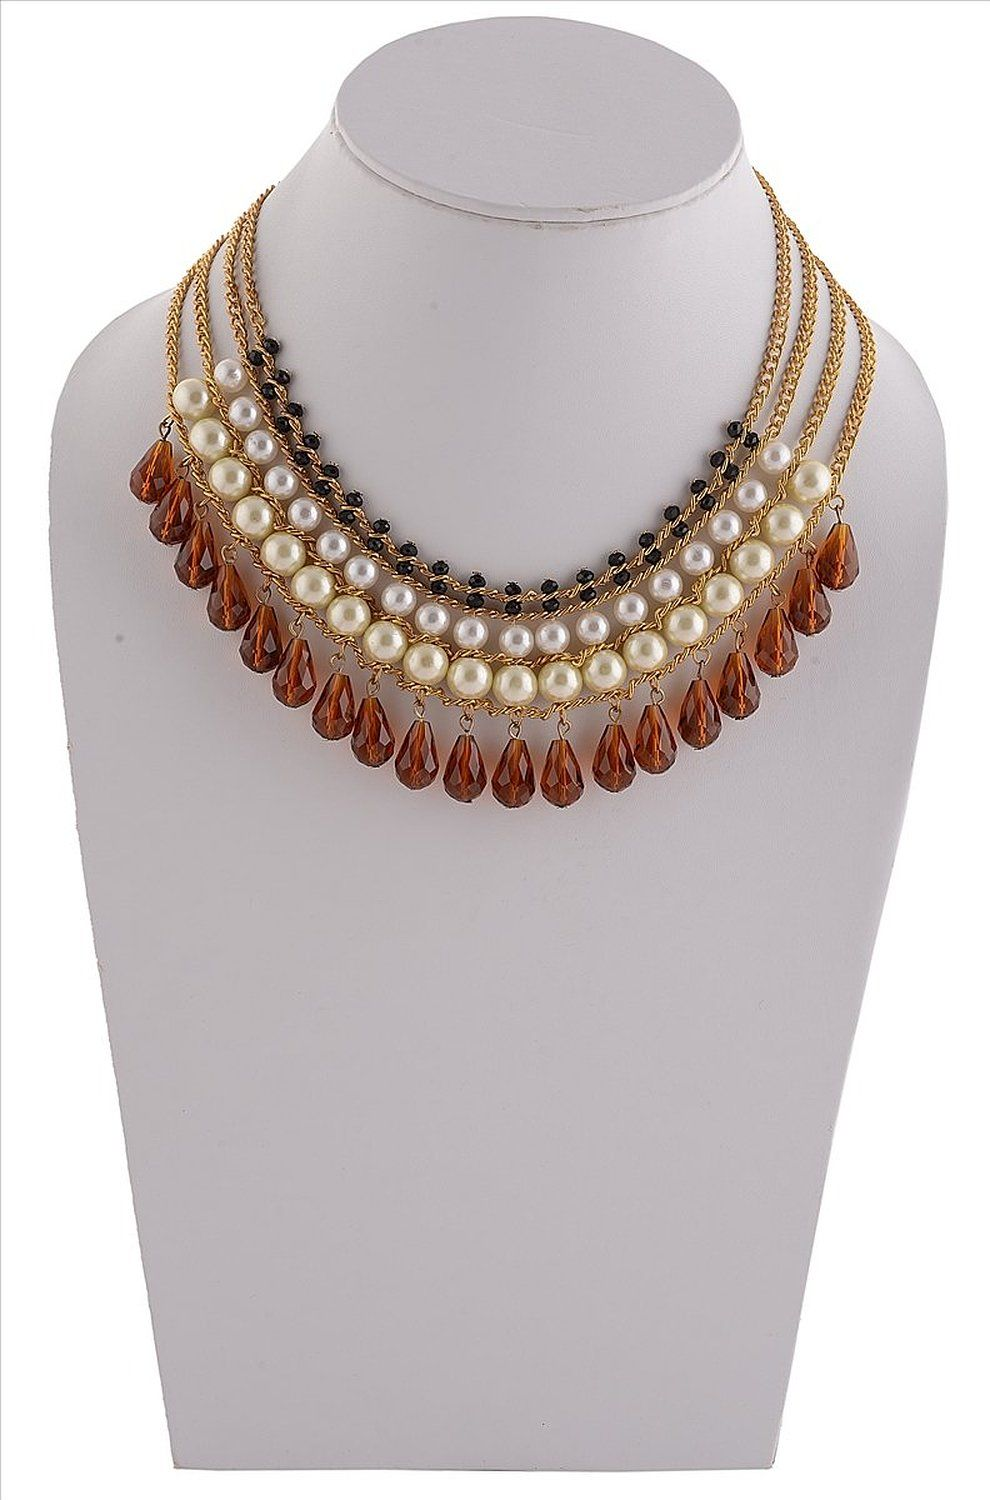 bead buy jewelry design ca online shows pasadena beads in background show clothing